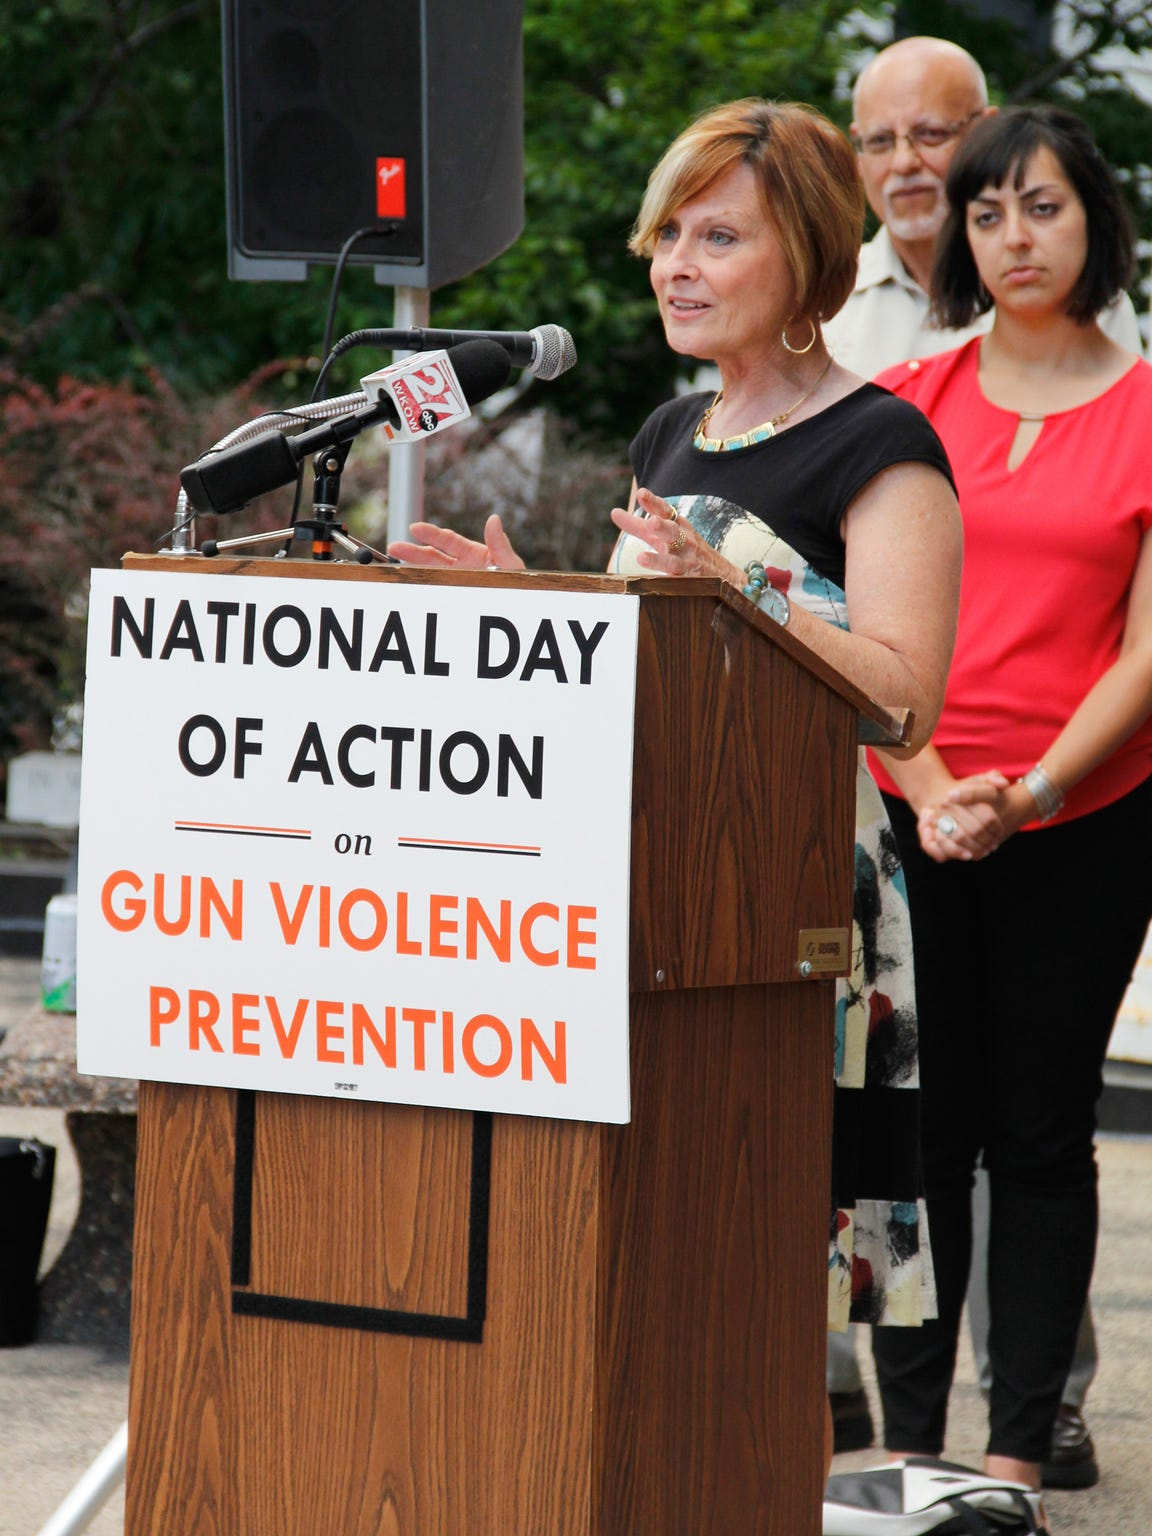 State Rep. Terese Berceau, D-Madison, speaks at the